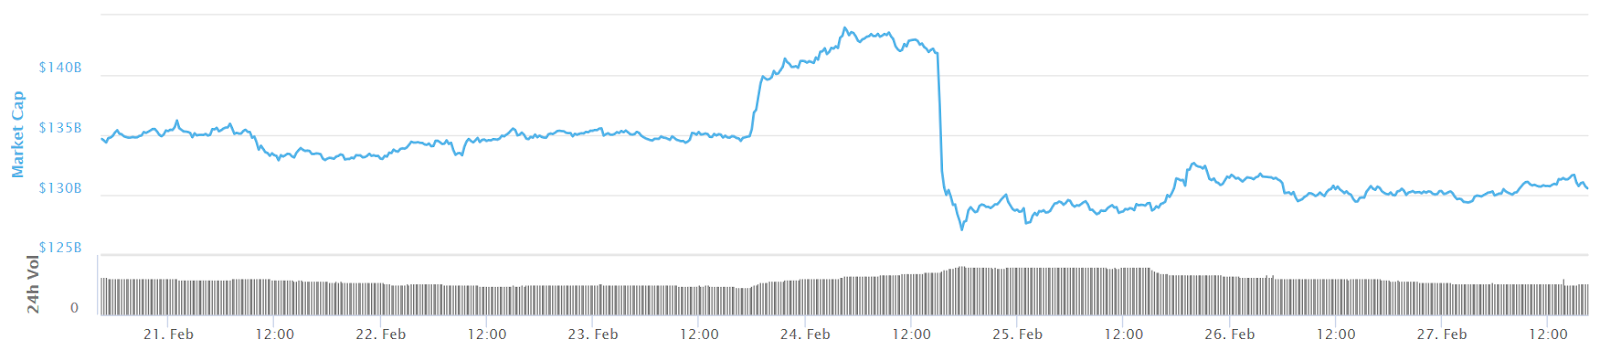 Total market cap of all cryptos 7-day chart